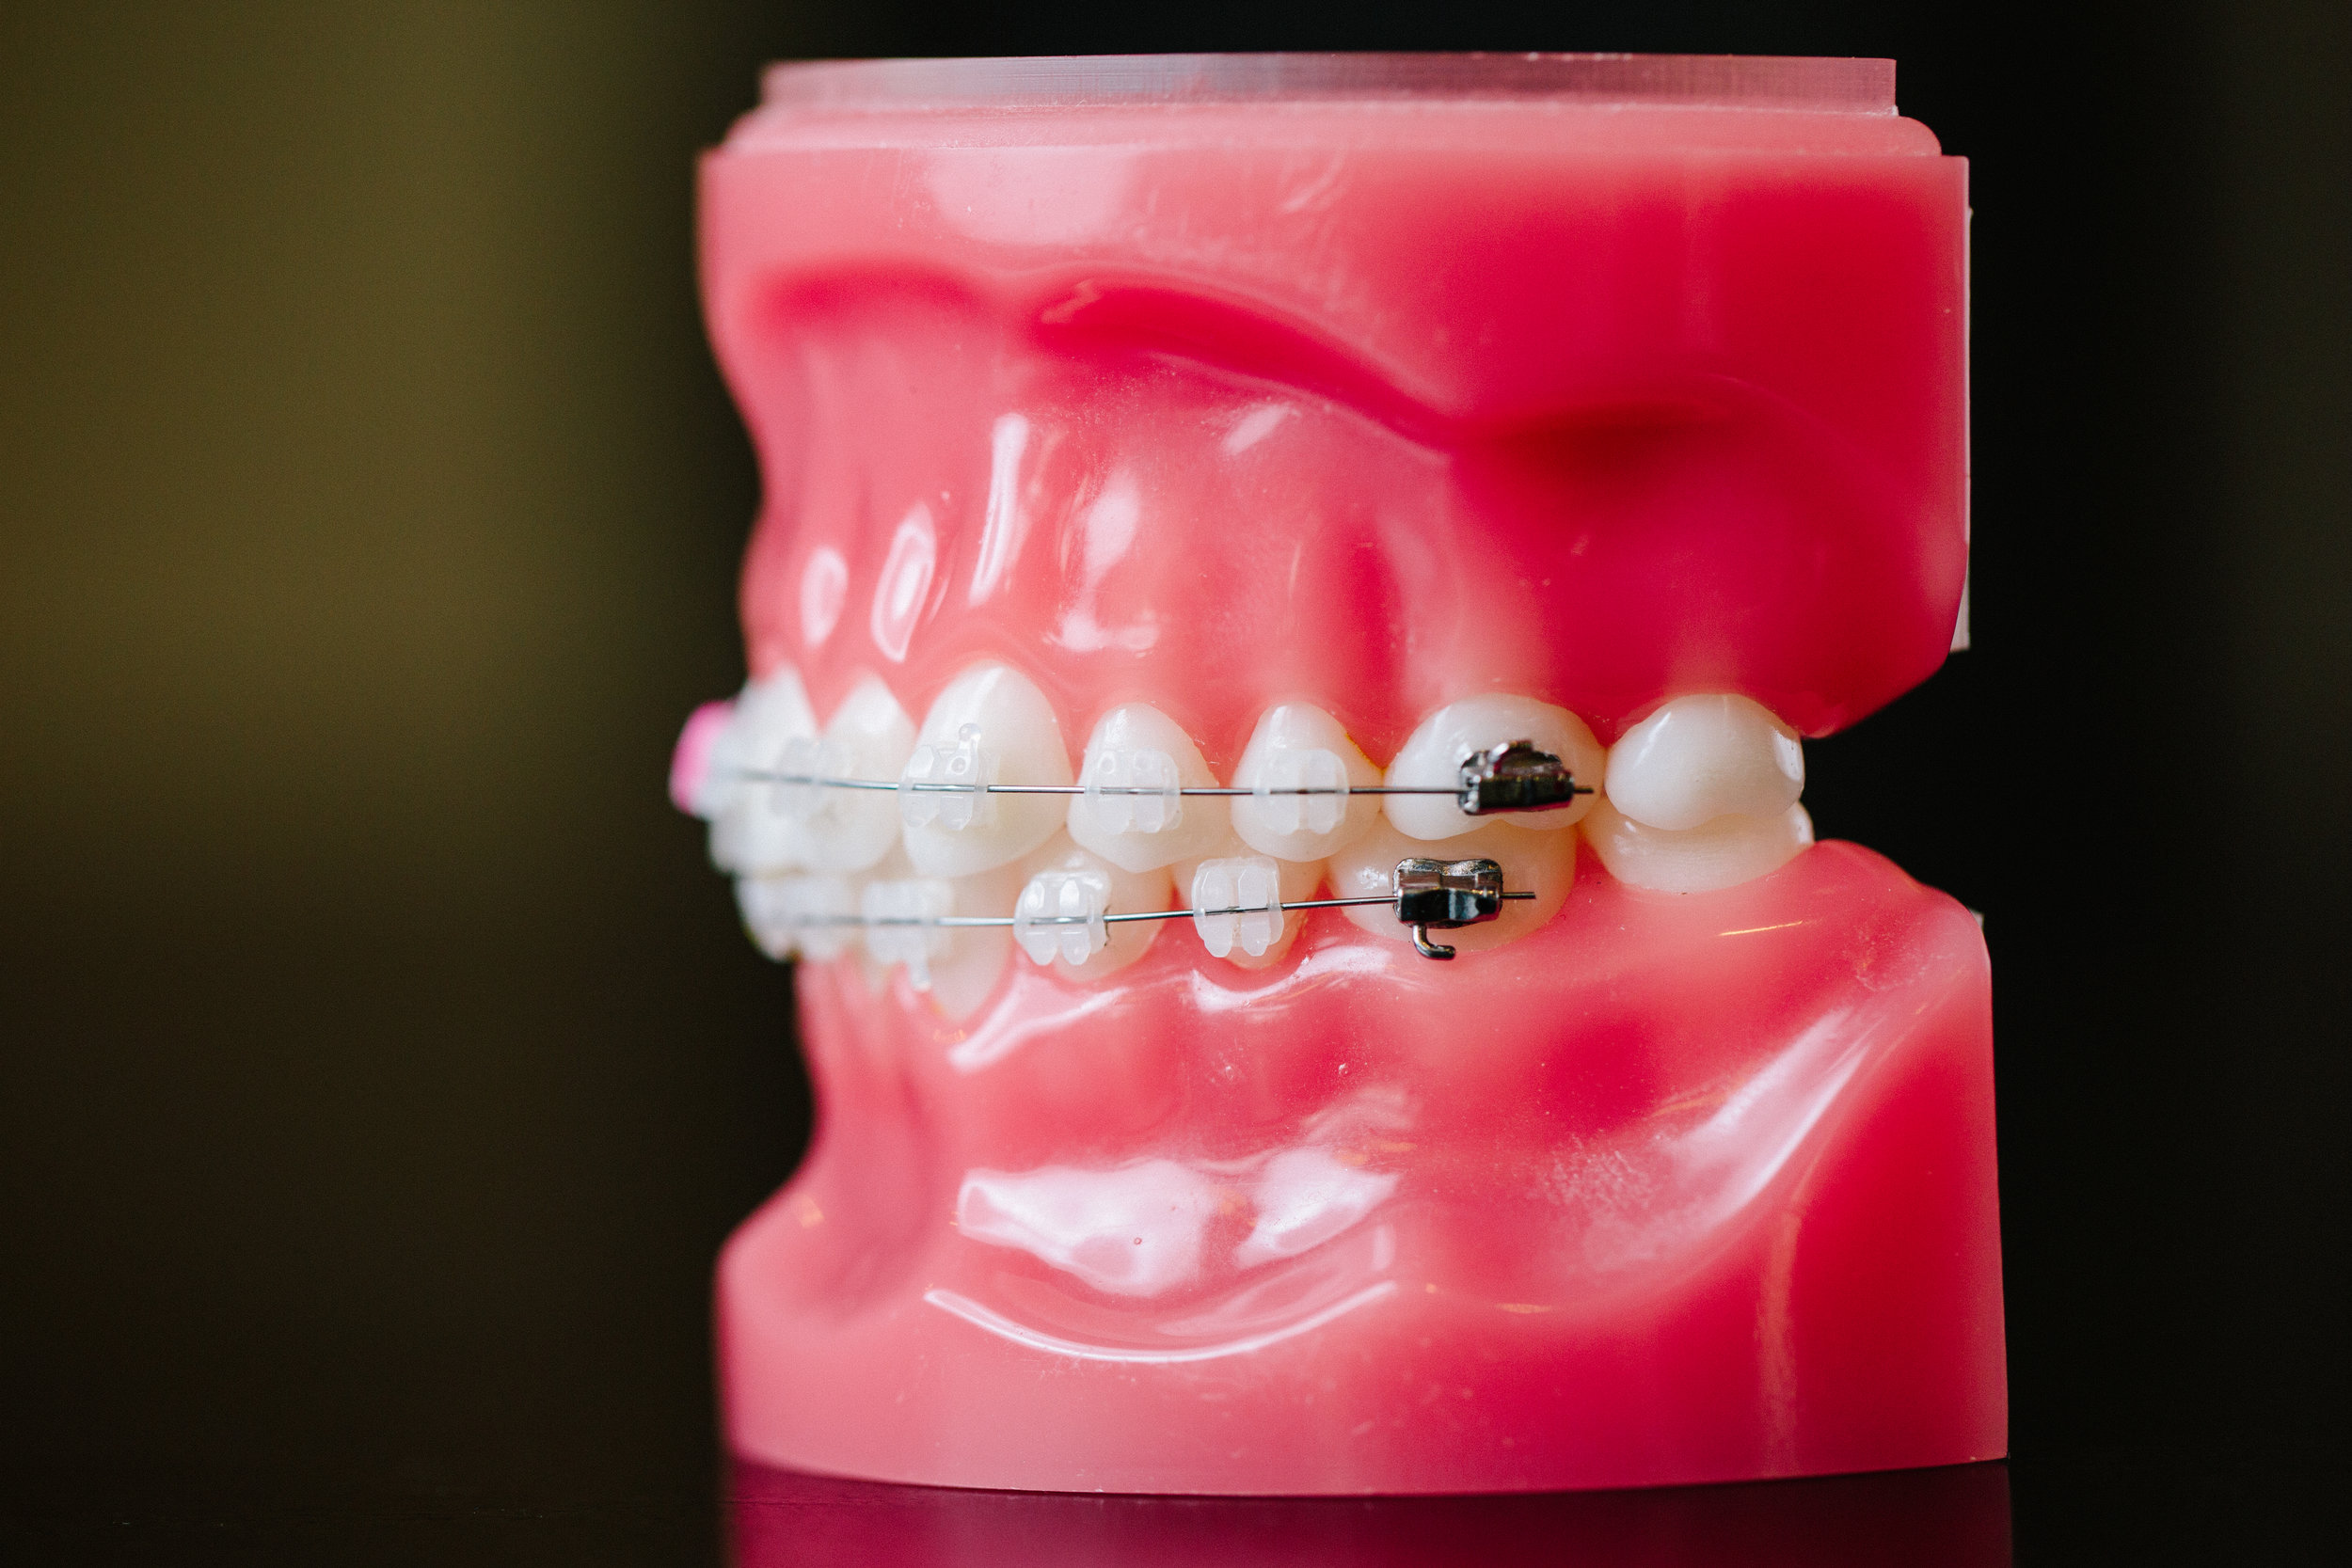 Side view of tooth model with colorful braces